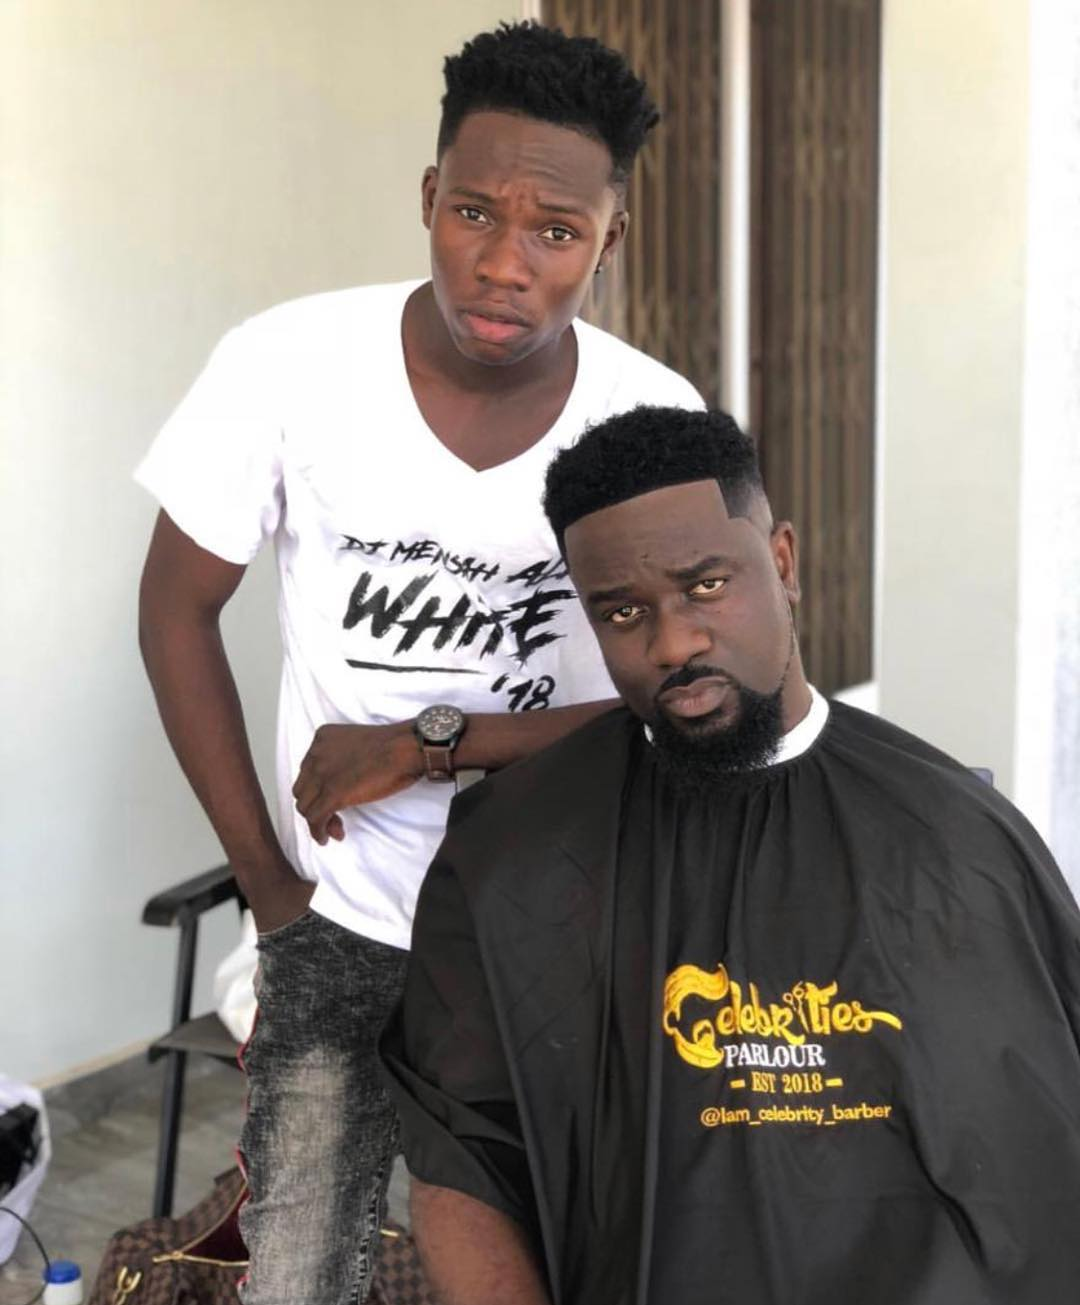 Celebrity barber with Sarkodie - Celebrity barber making millions without a degree or certificate brags